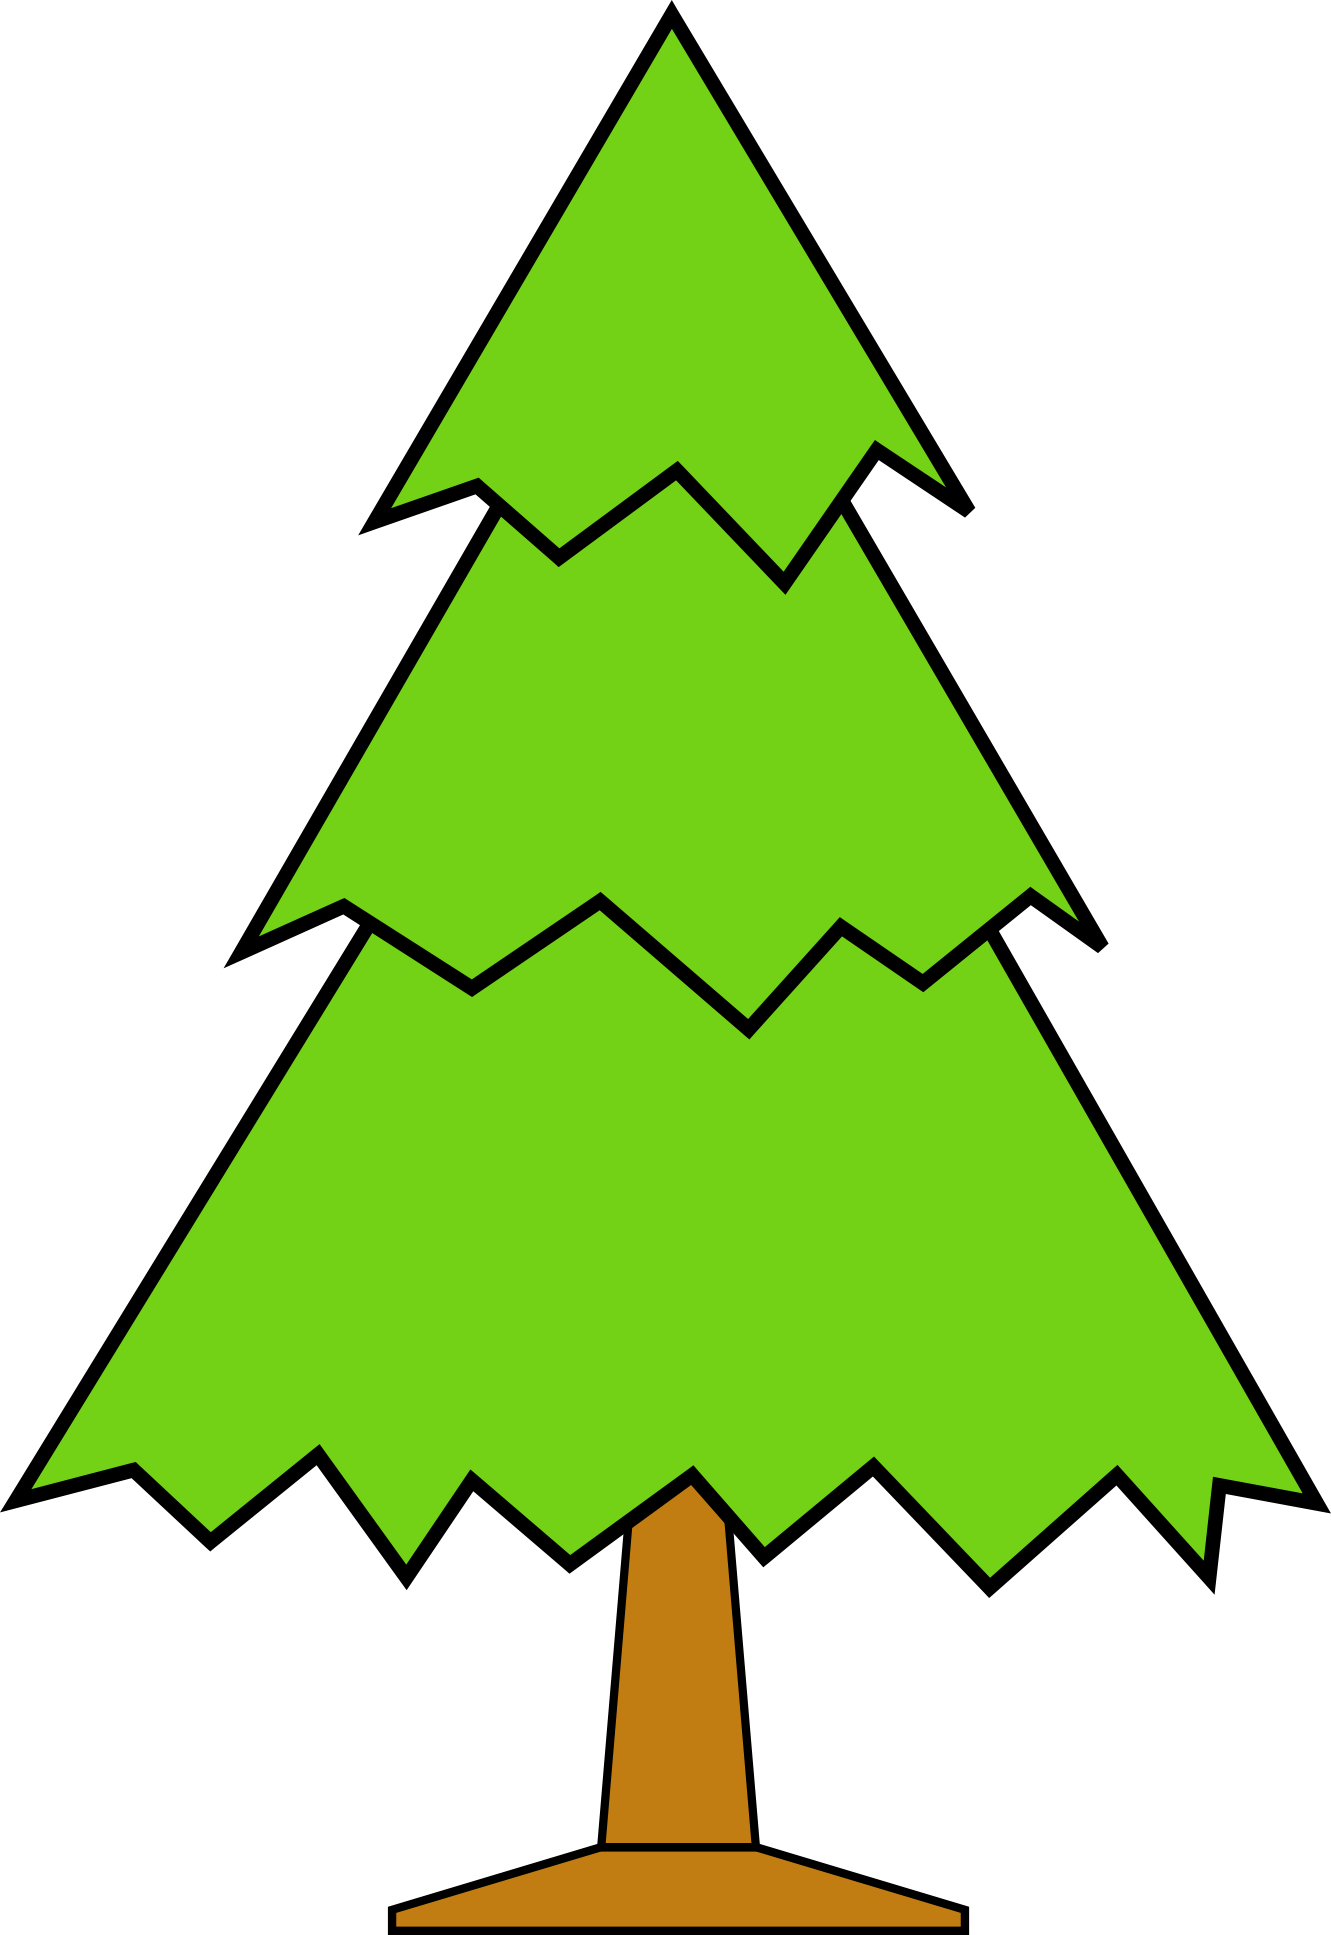 Clipart Christmas Trees - Cliparts.co